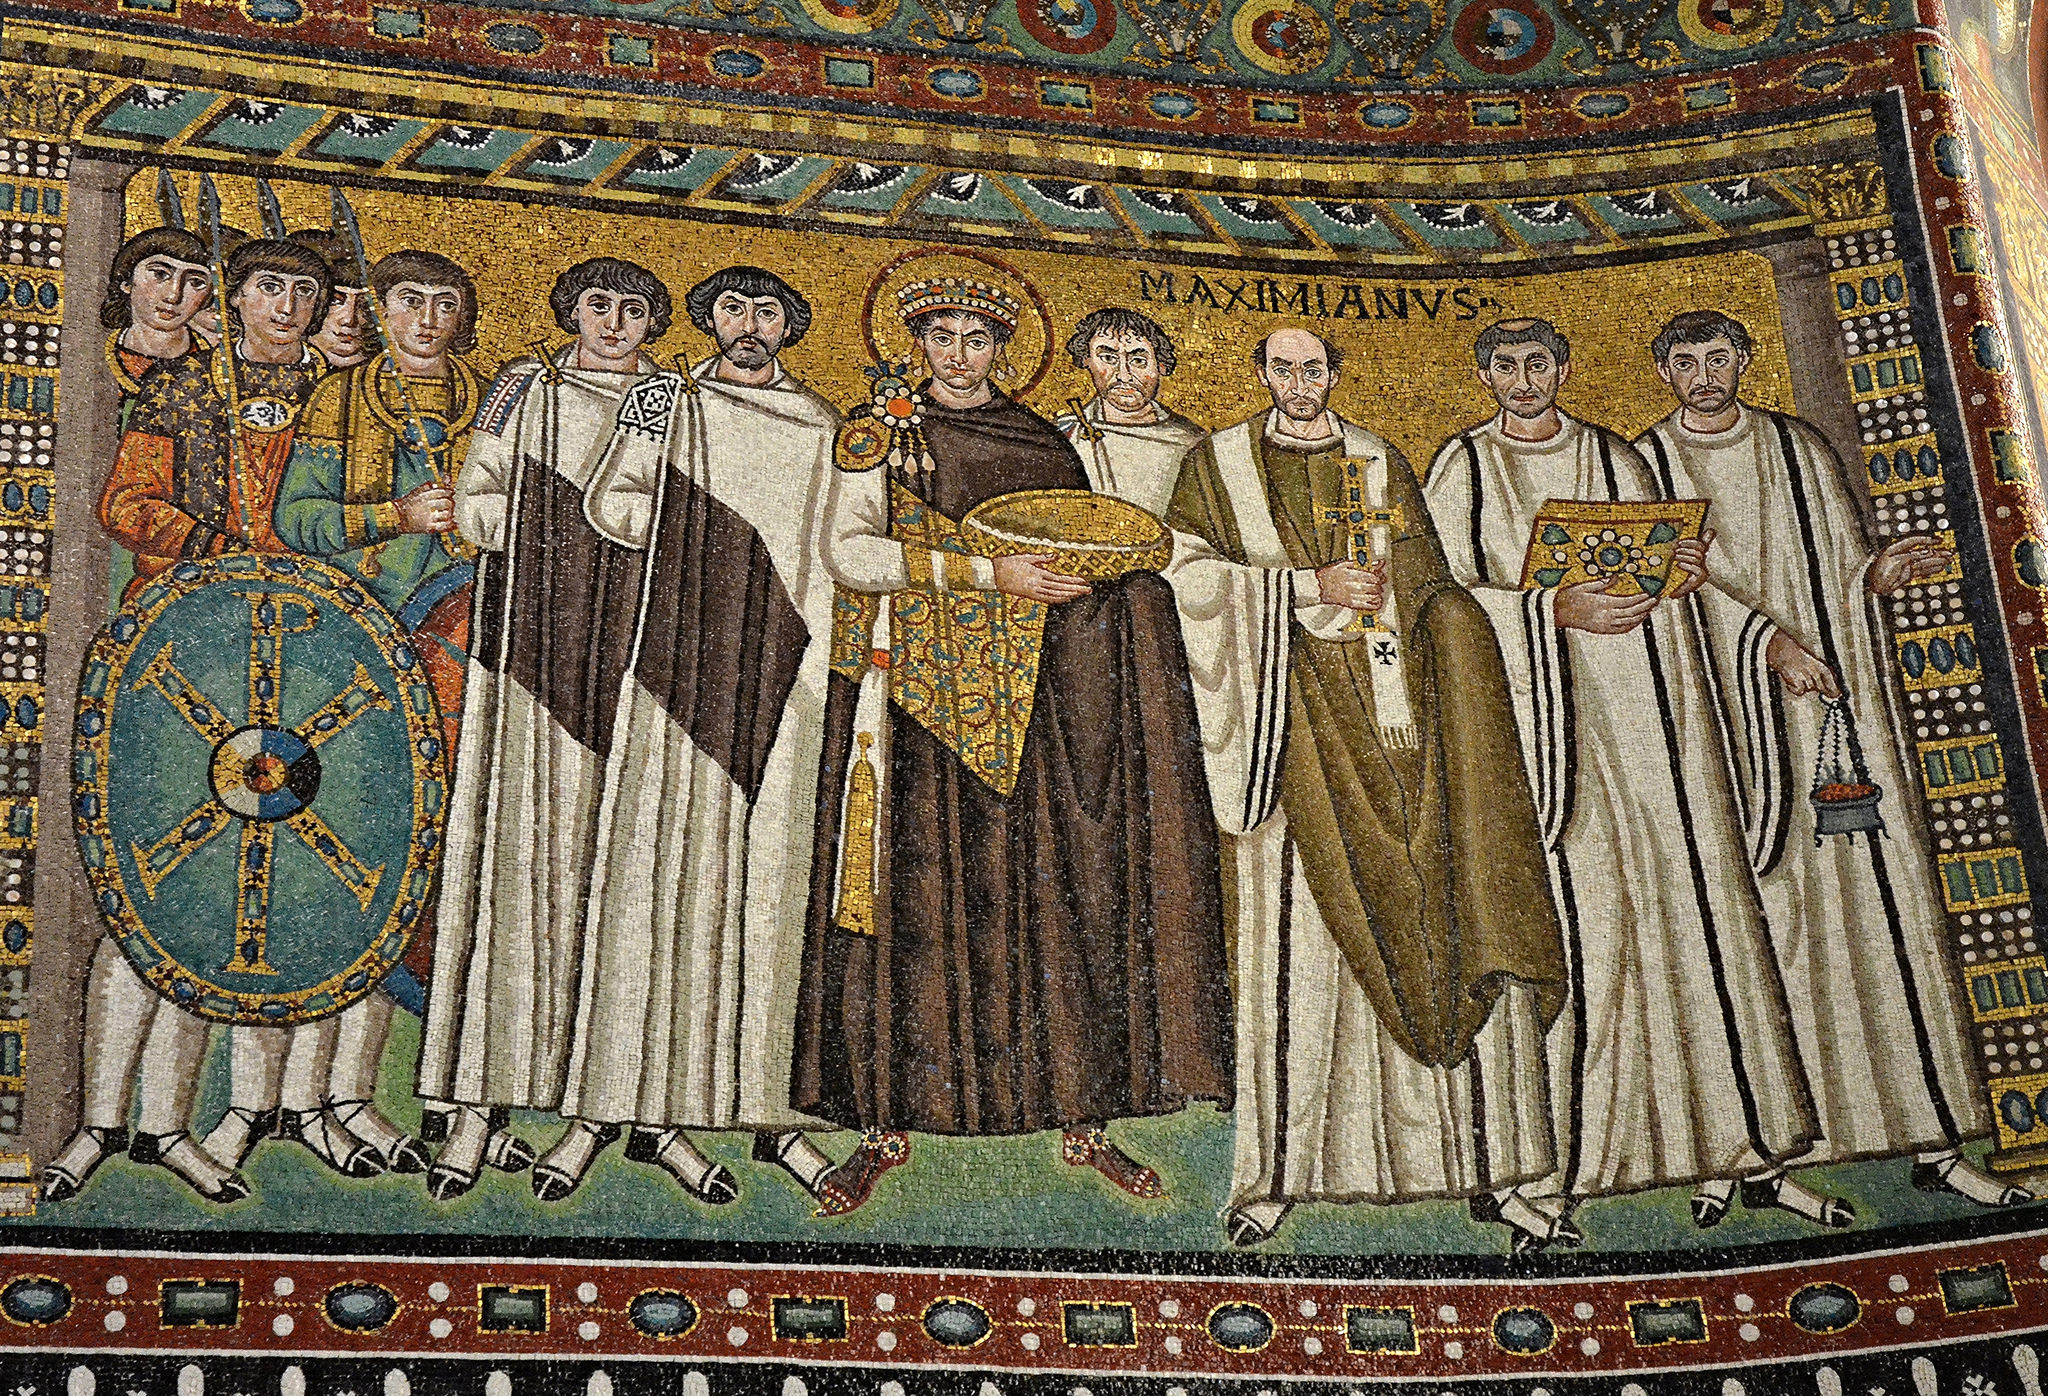 Limited choice of haircuts in the Byzantine court.